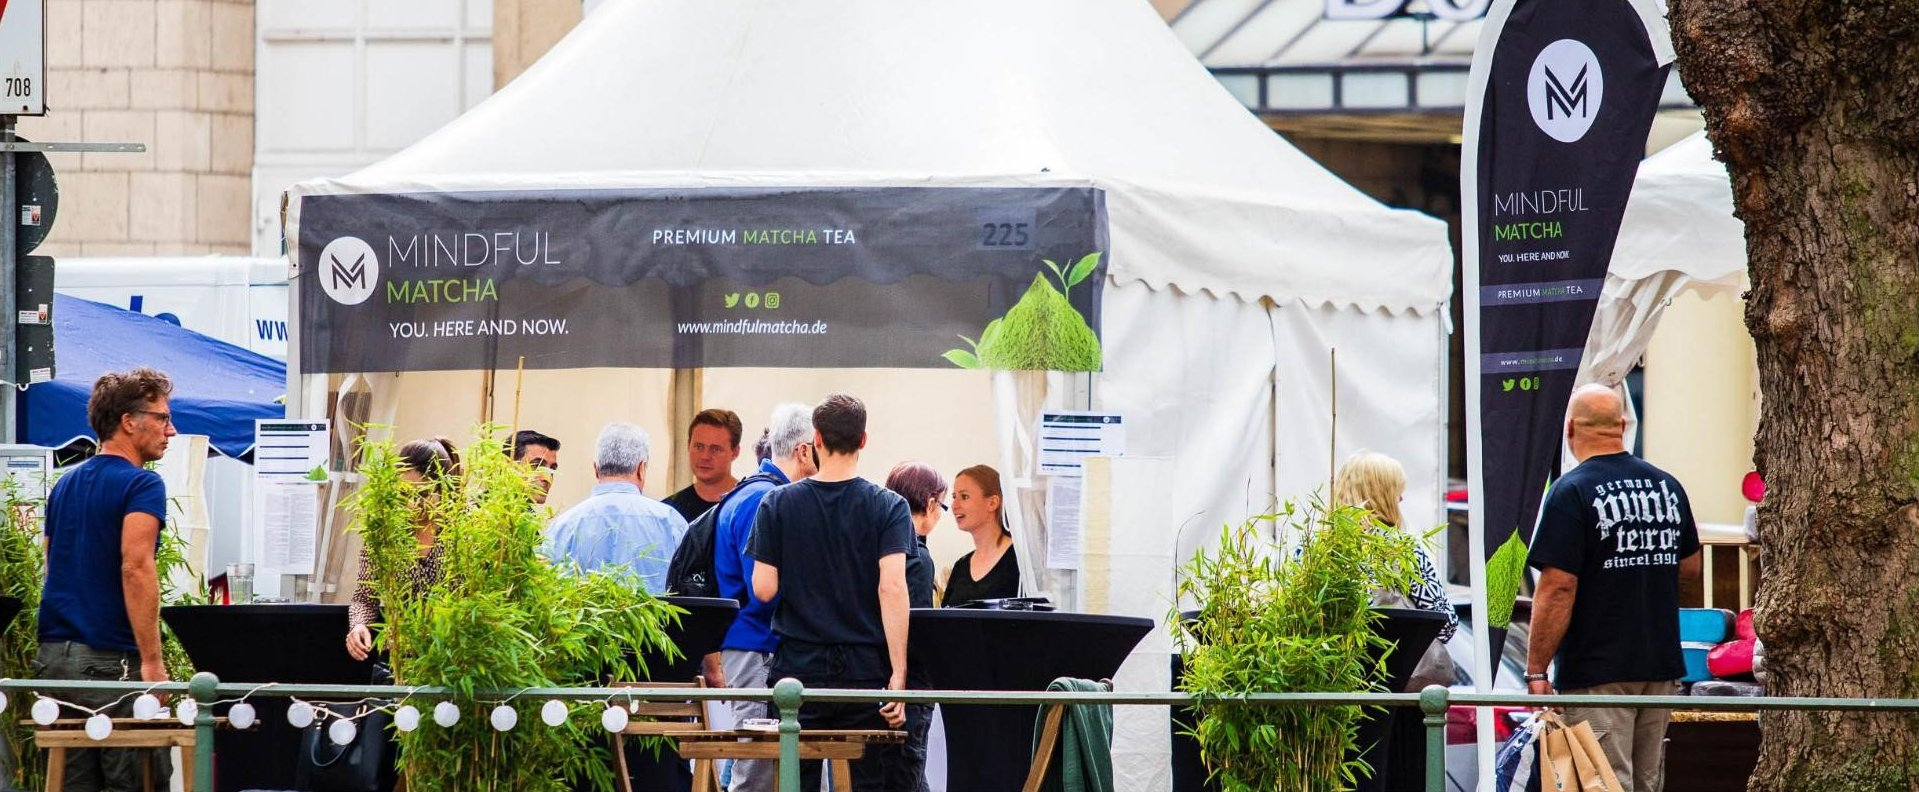 Gourmet Festival Stand - © Mindful Matcha